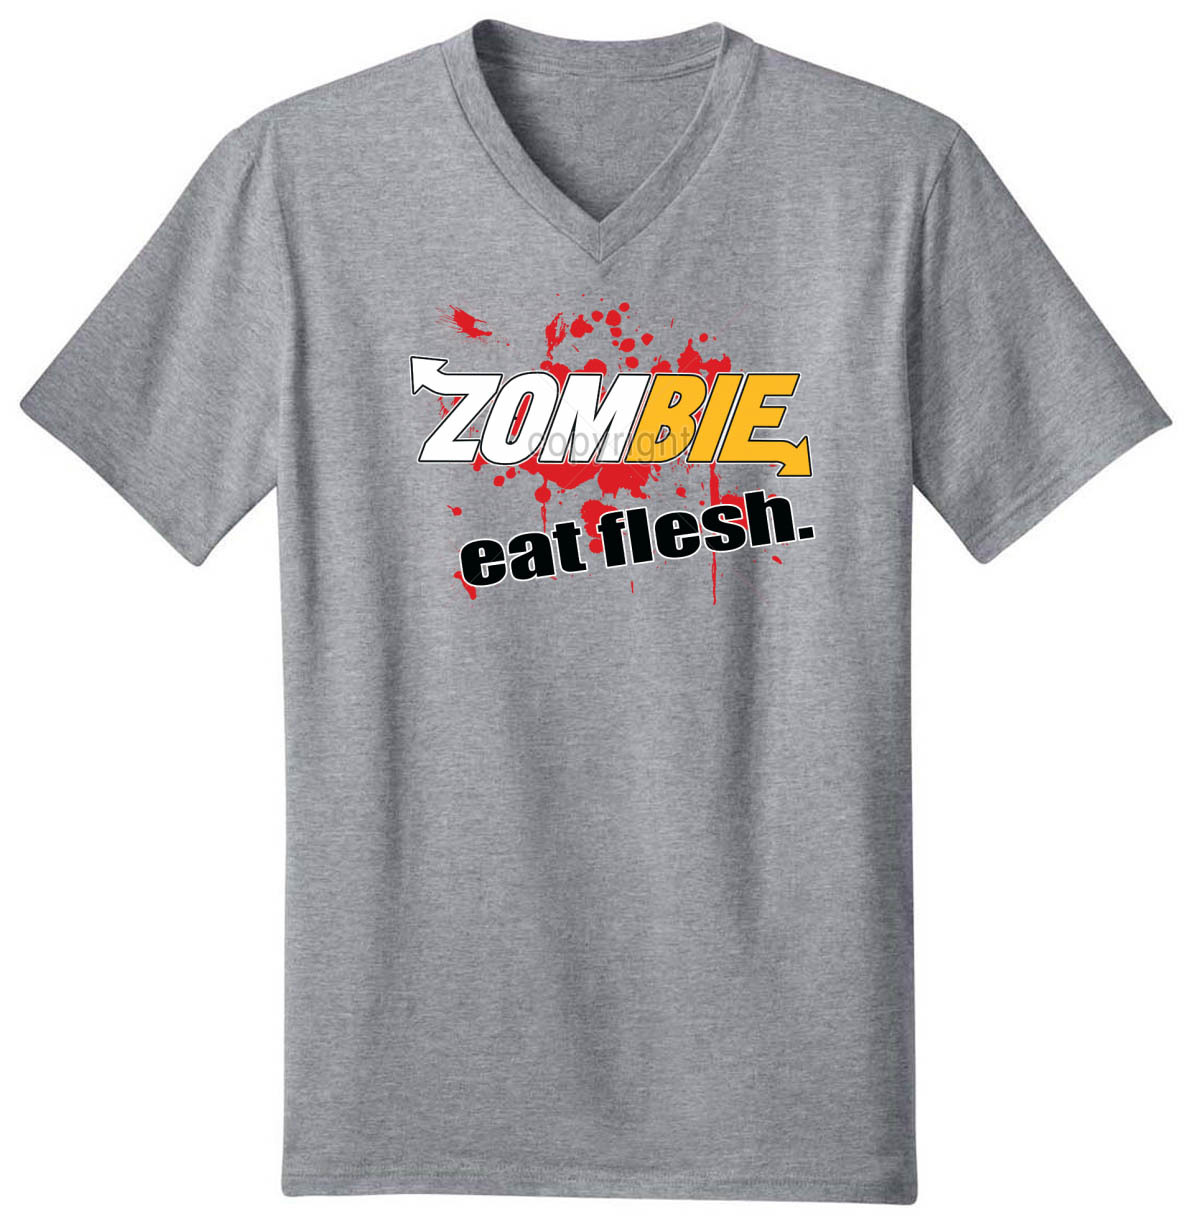 Zombies Eat Flesh Men's V-Neck T-Shirt